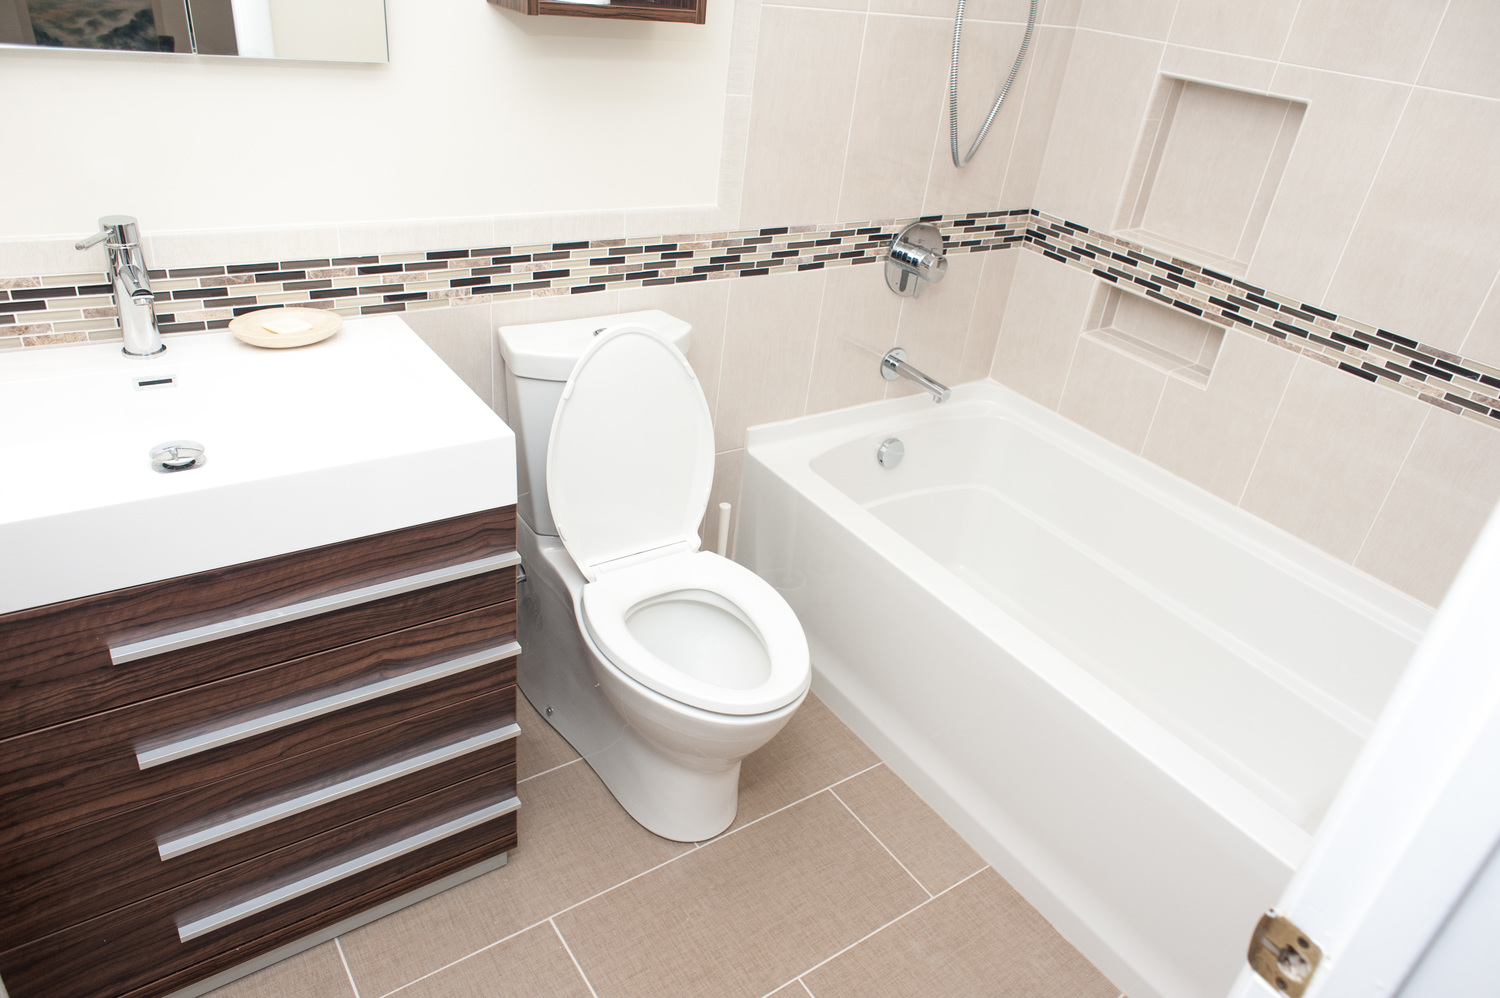 Bathroom+Renovation+Crofton+MD.jpg